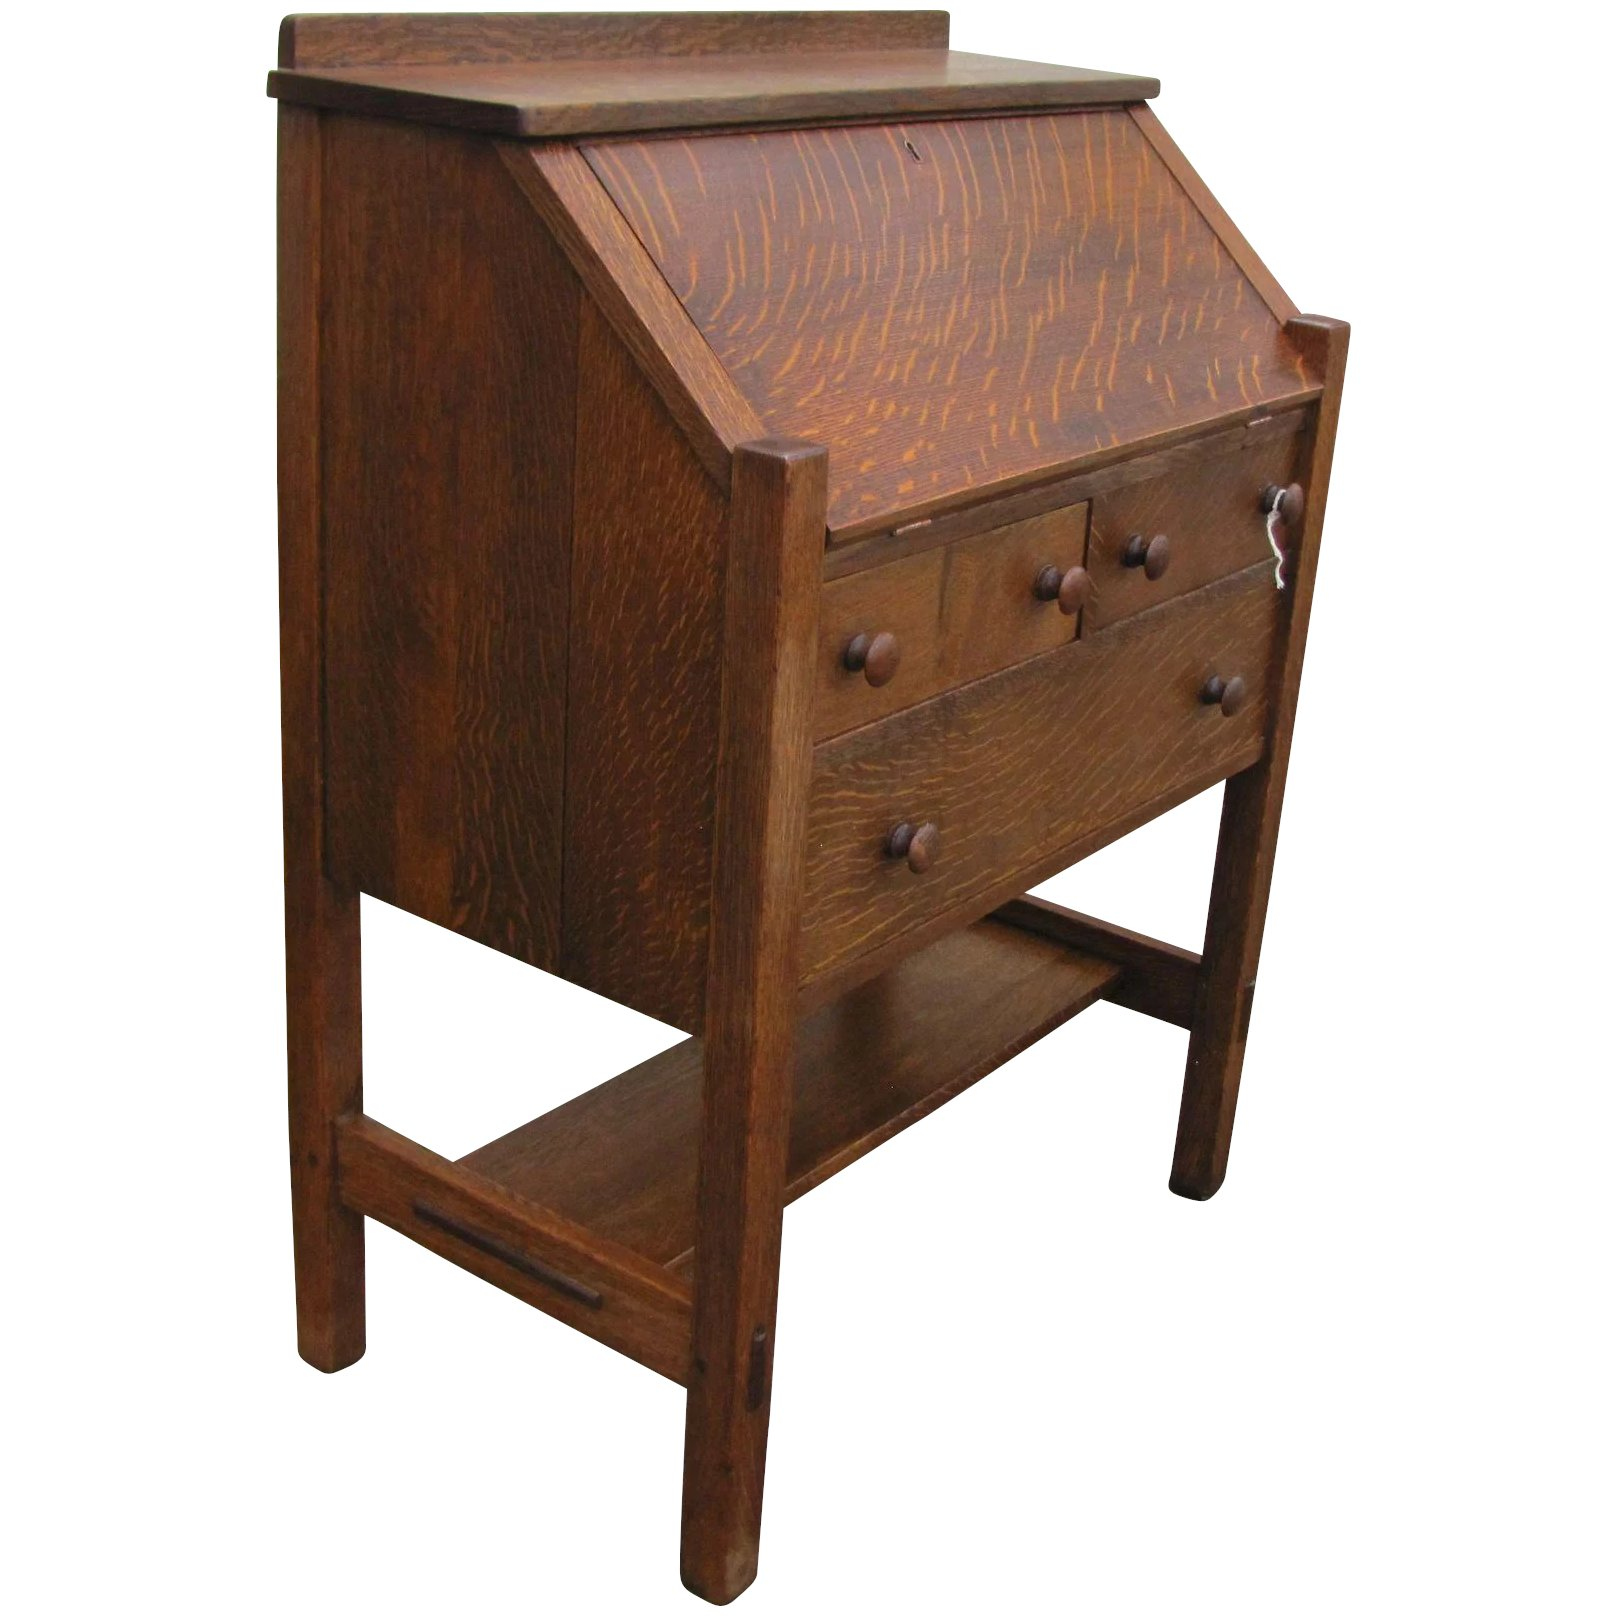 brothers furniture craftsman drawer rare oak desk mission pull front with straps hammered product stickley early drop voorhees and